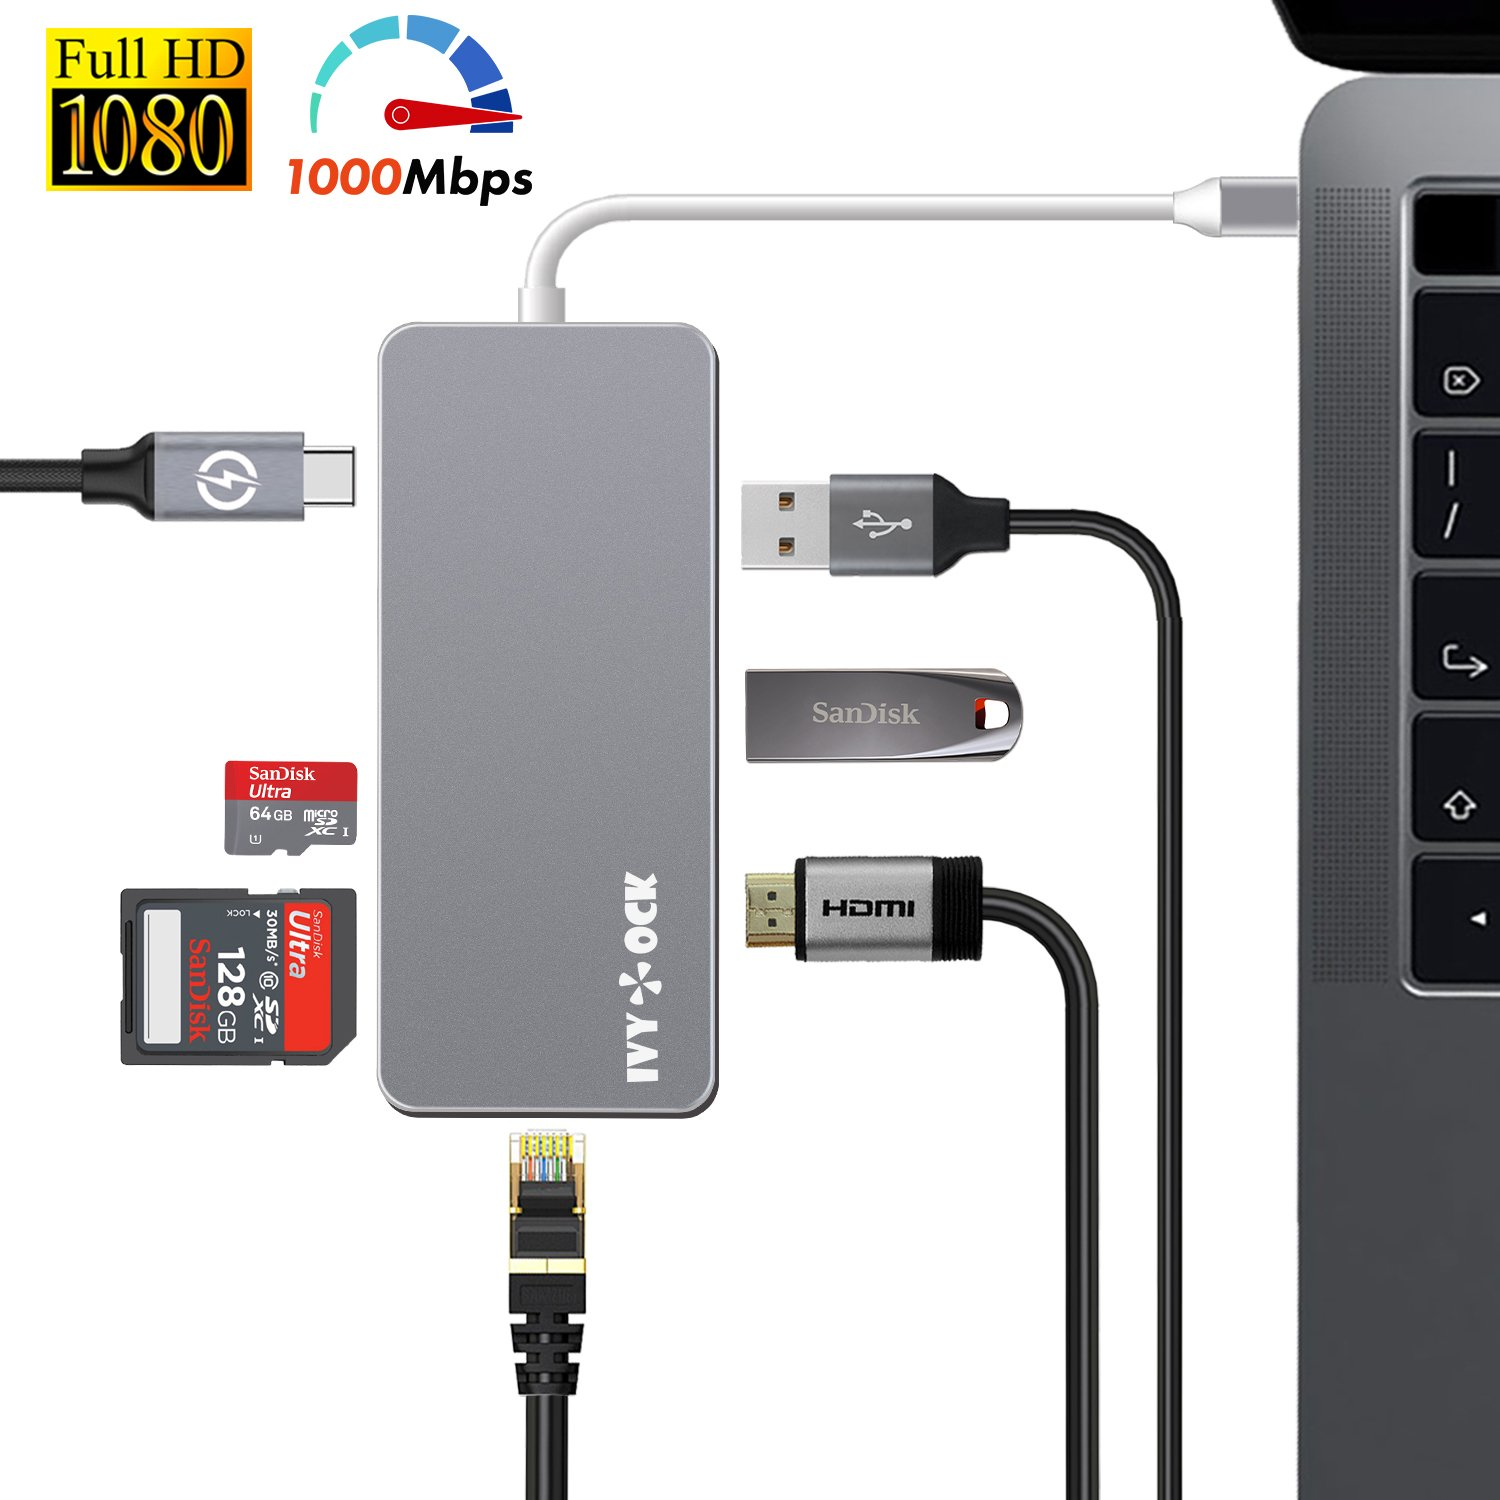 USB C Hub, IVYOCK Type C Hub Dongle with HDMI, Gigabit Ethernet, Type-C Charging Port, USB 3.0/2.0 Ports, SD/Micro SD Card Reader, USB-C Adapter for MacBook Pro/Pixelbook/Dell XPS/Yoga and More by IVYOCK (Image #1)